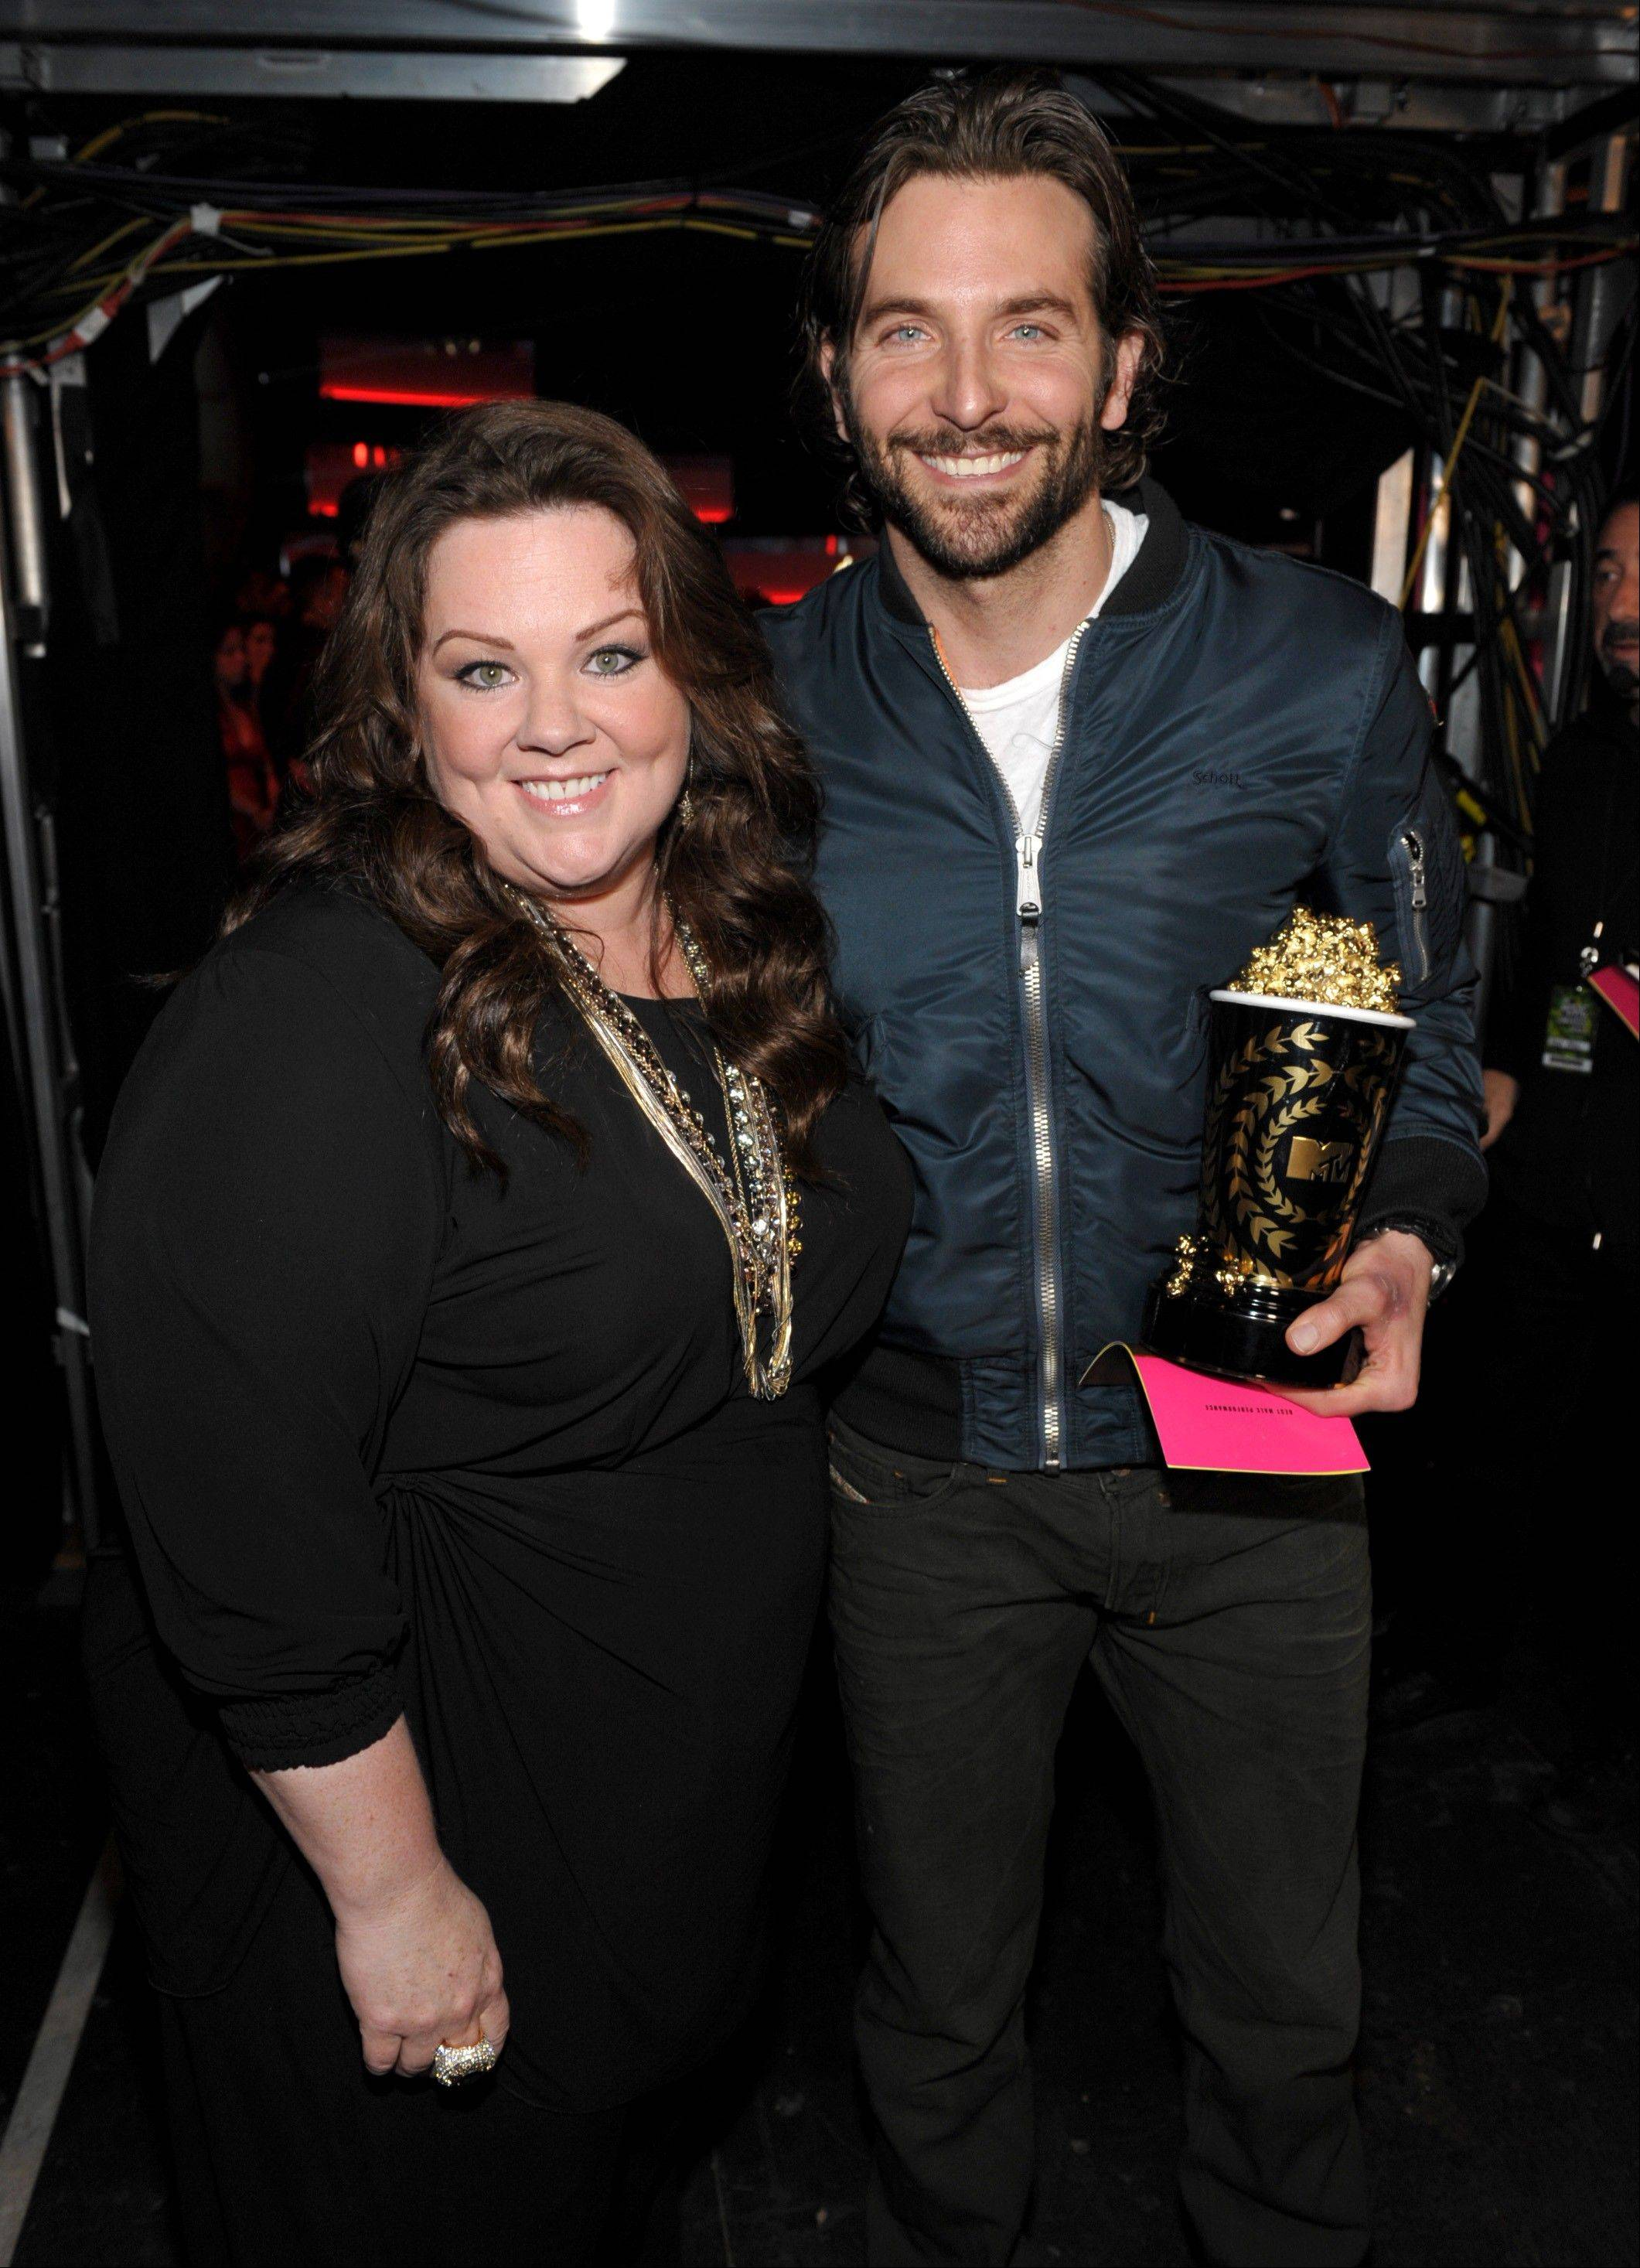 "IMAGE DISTRIBUTED FOR MTV - Actors Melissa McCarthy and Bradley Cooper winner of the award for best male performance for ""Silver Ling Playbook"" backstage at the MTV Movie Awards in Sony Pictures Studio Lot in Culver City, Calif., on Sunday April 14, 2013. (Photo by John Shearer/Invision for MTV/AP Images)"